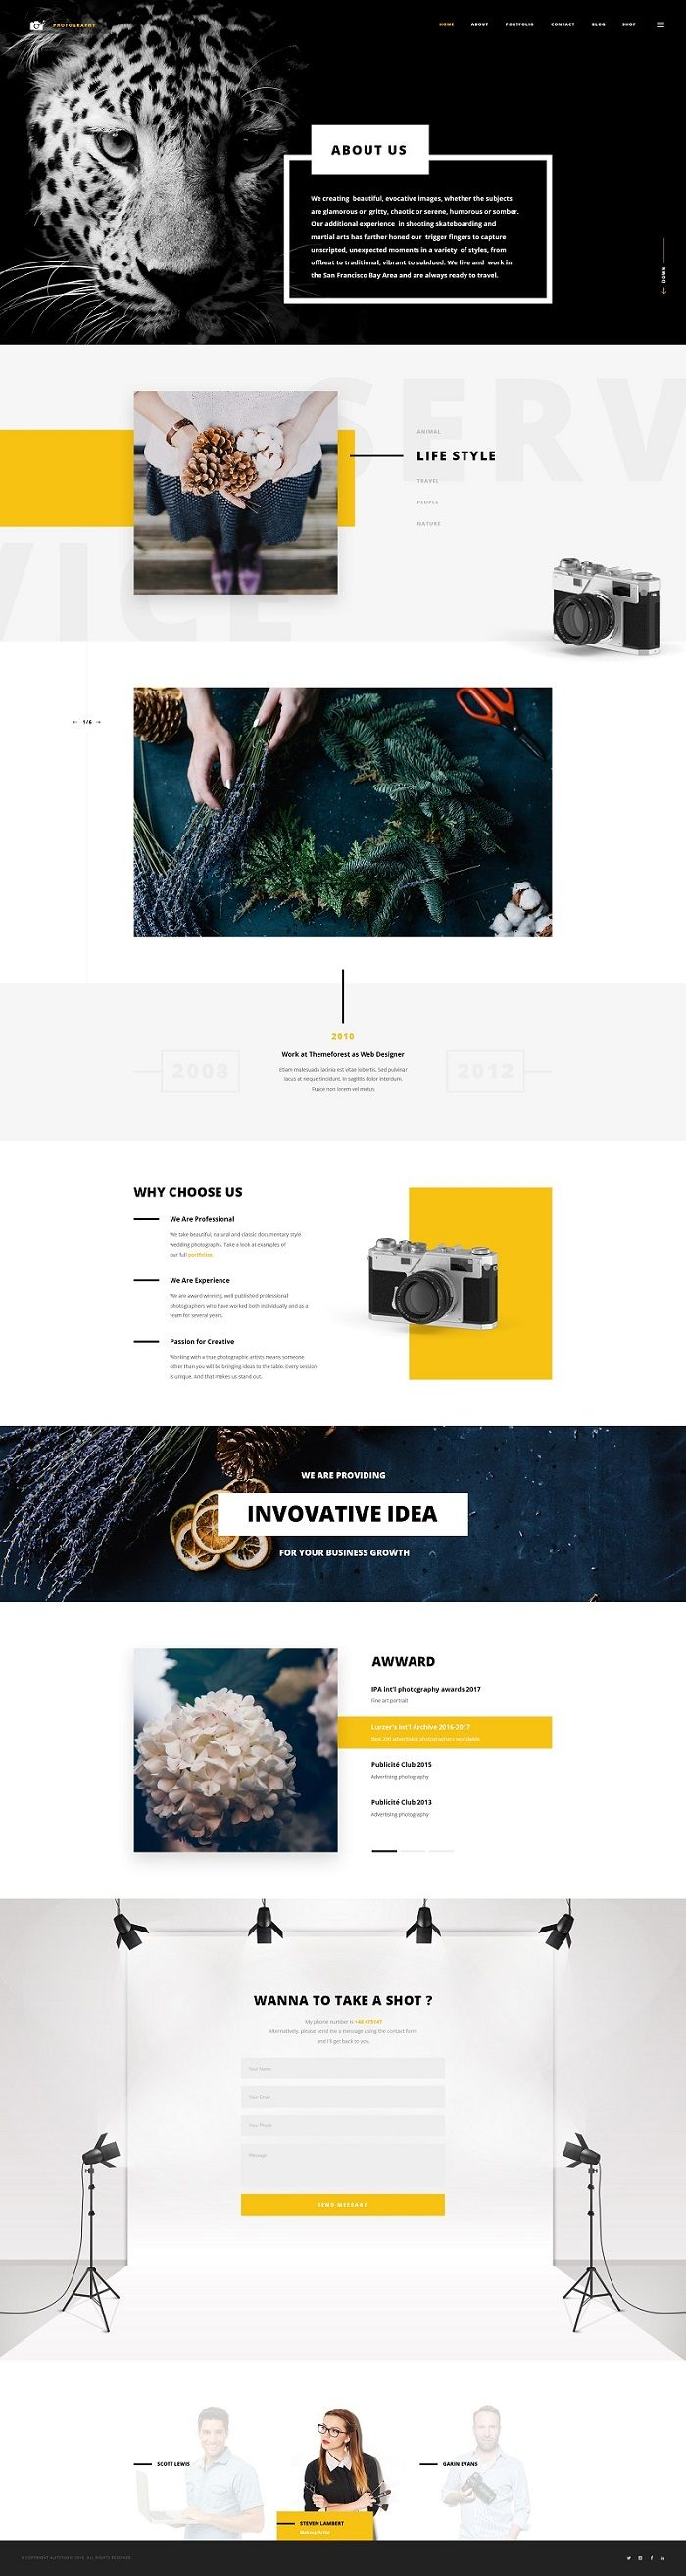 Photography Themes for Websites #DESIGN